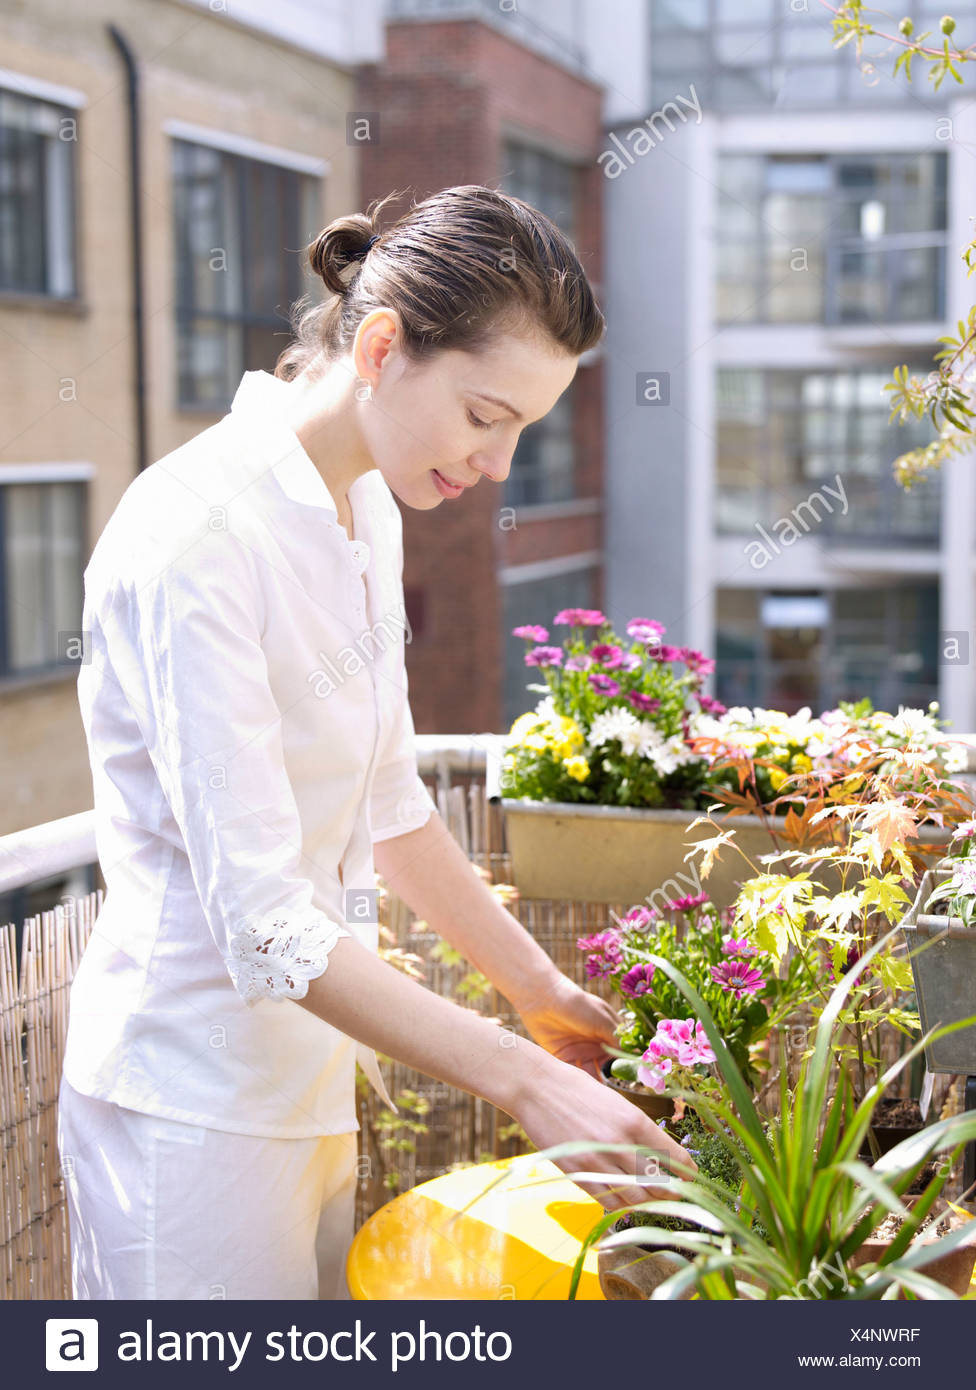 Woman on balcony with flowers - Stock Image